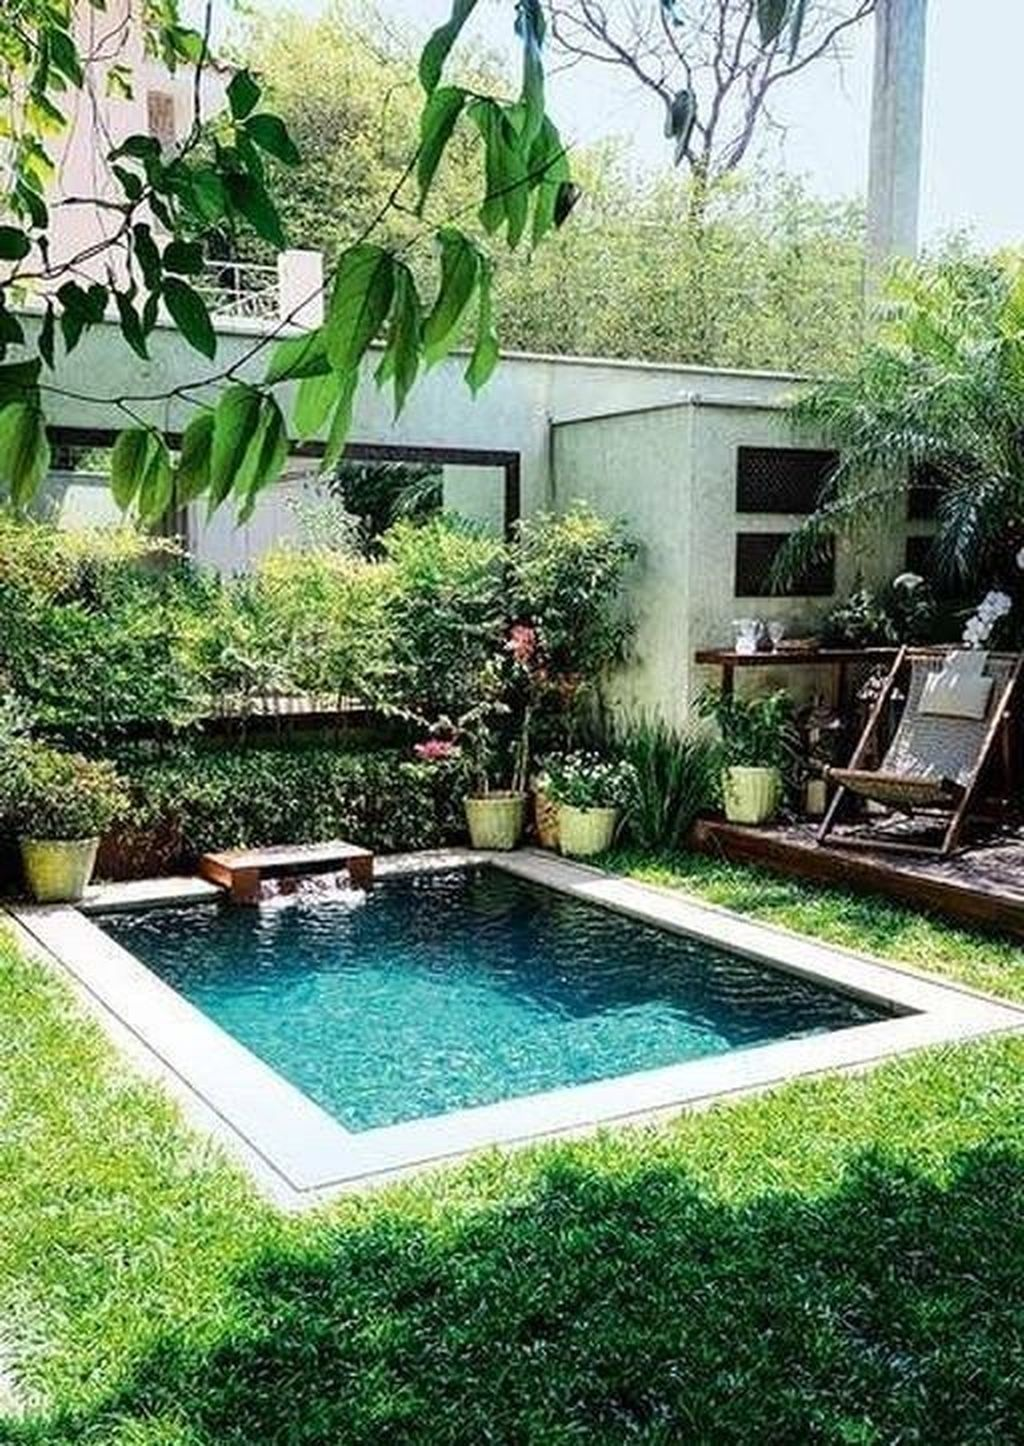 30 Amazing Natural Small Pools Design Ideas For Backyard Coodecor Small Pool Design Small Inground Pool Swimming Pools Backyard